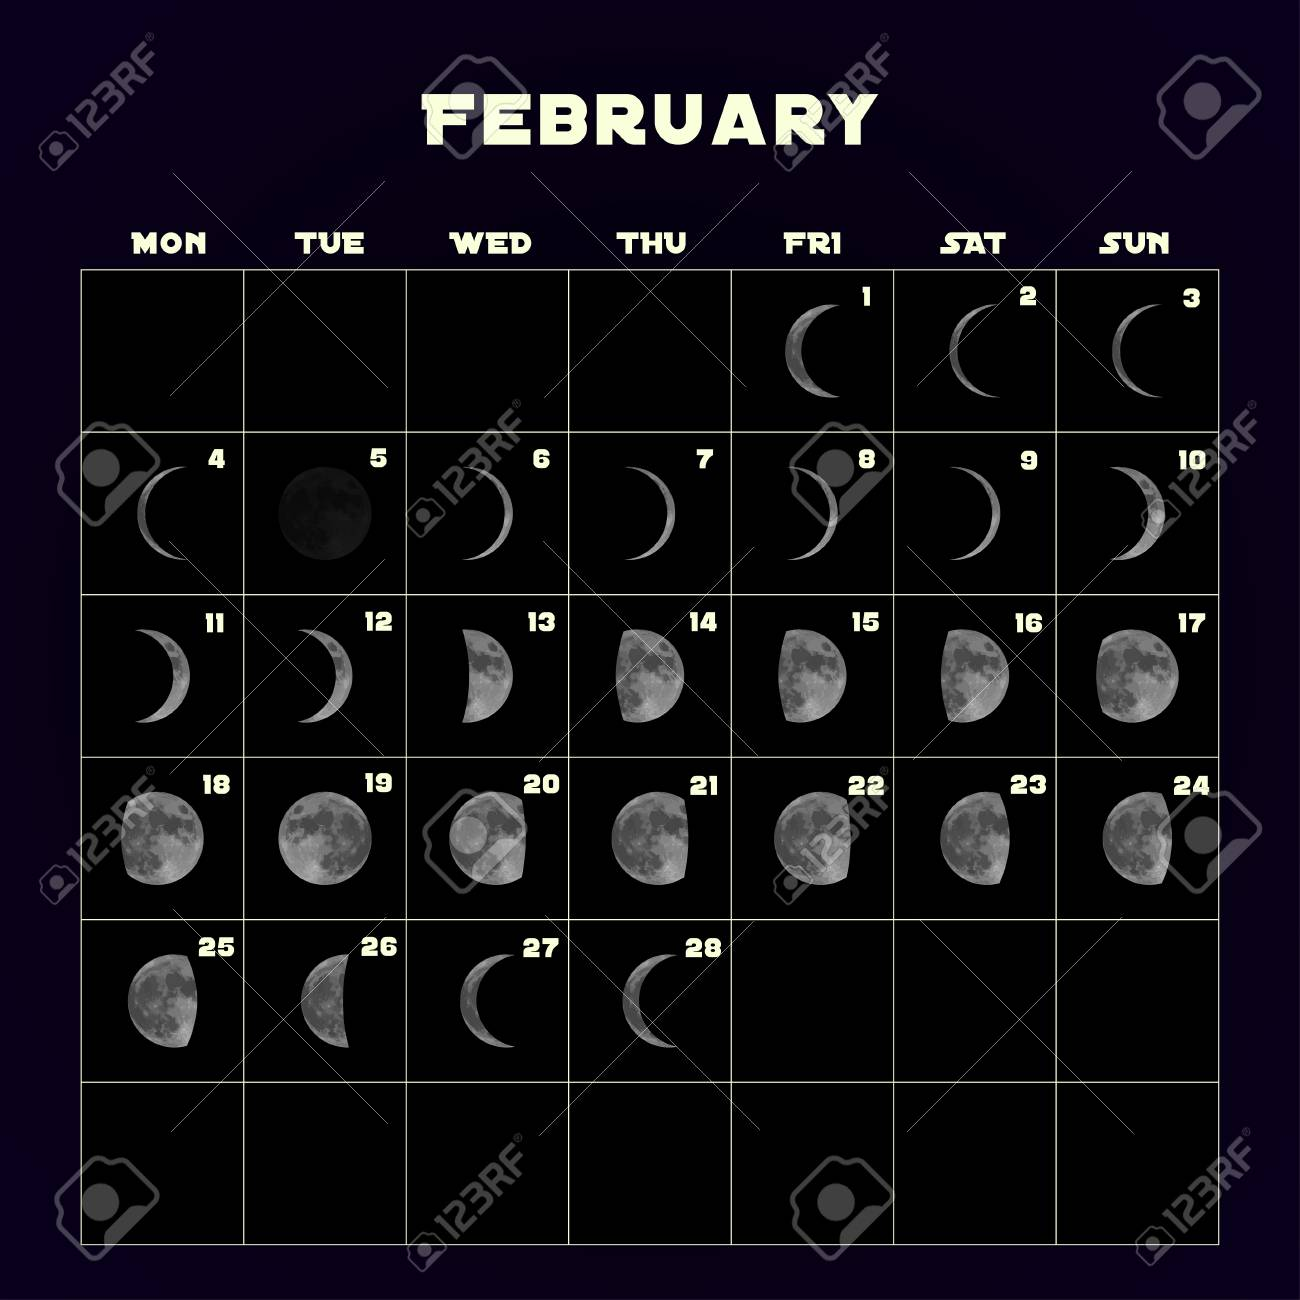 Moon Phases 2019 Calendar Moon Phases Calendar For 2019 With Realistic Moon. February